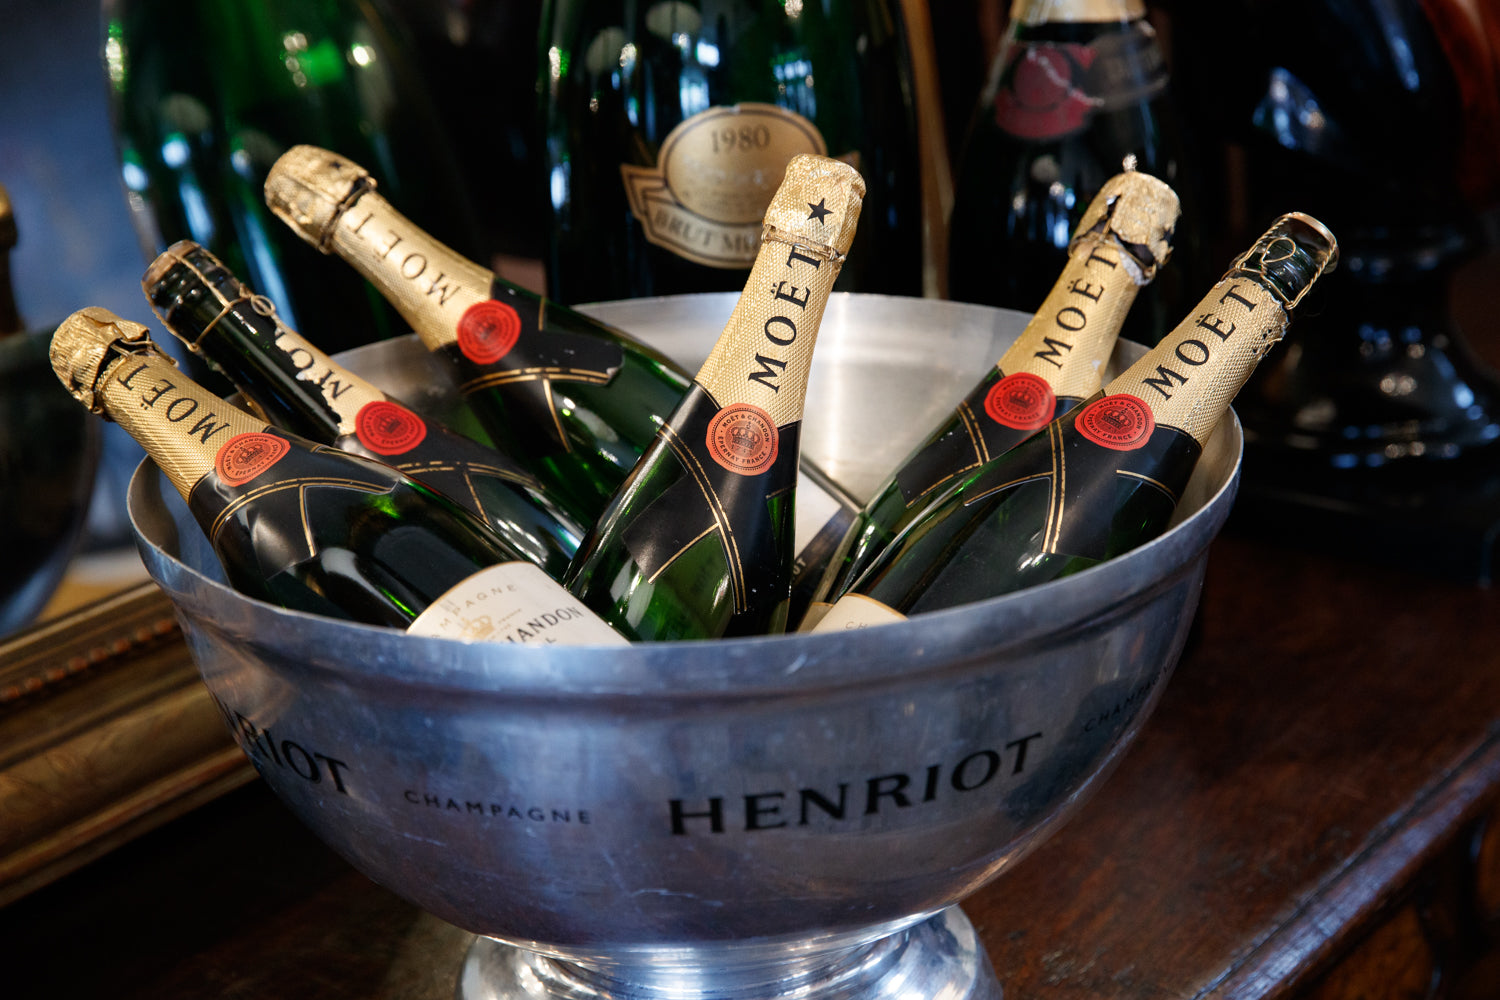 French Henriot Champagne Bucket